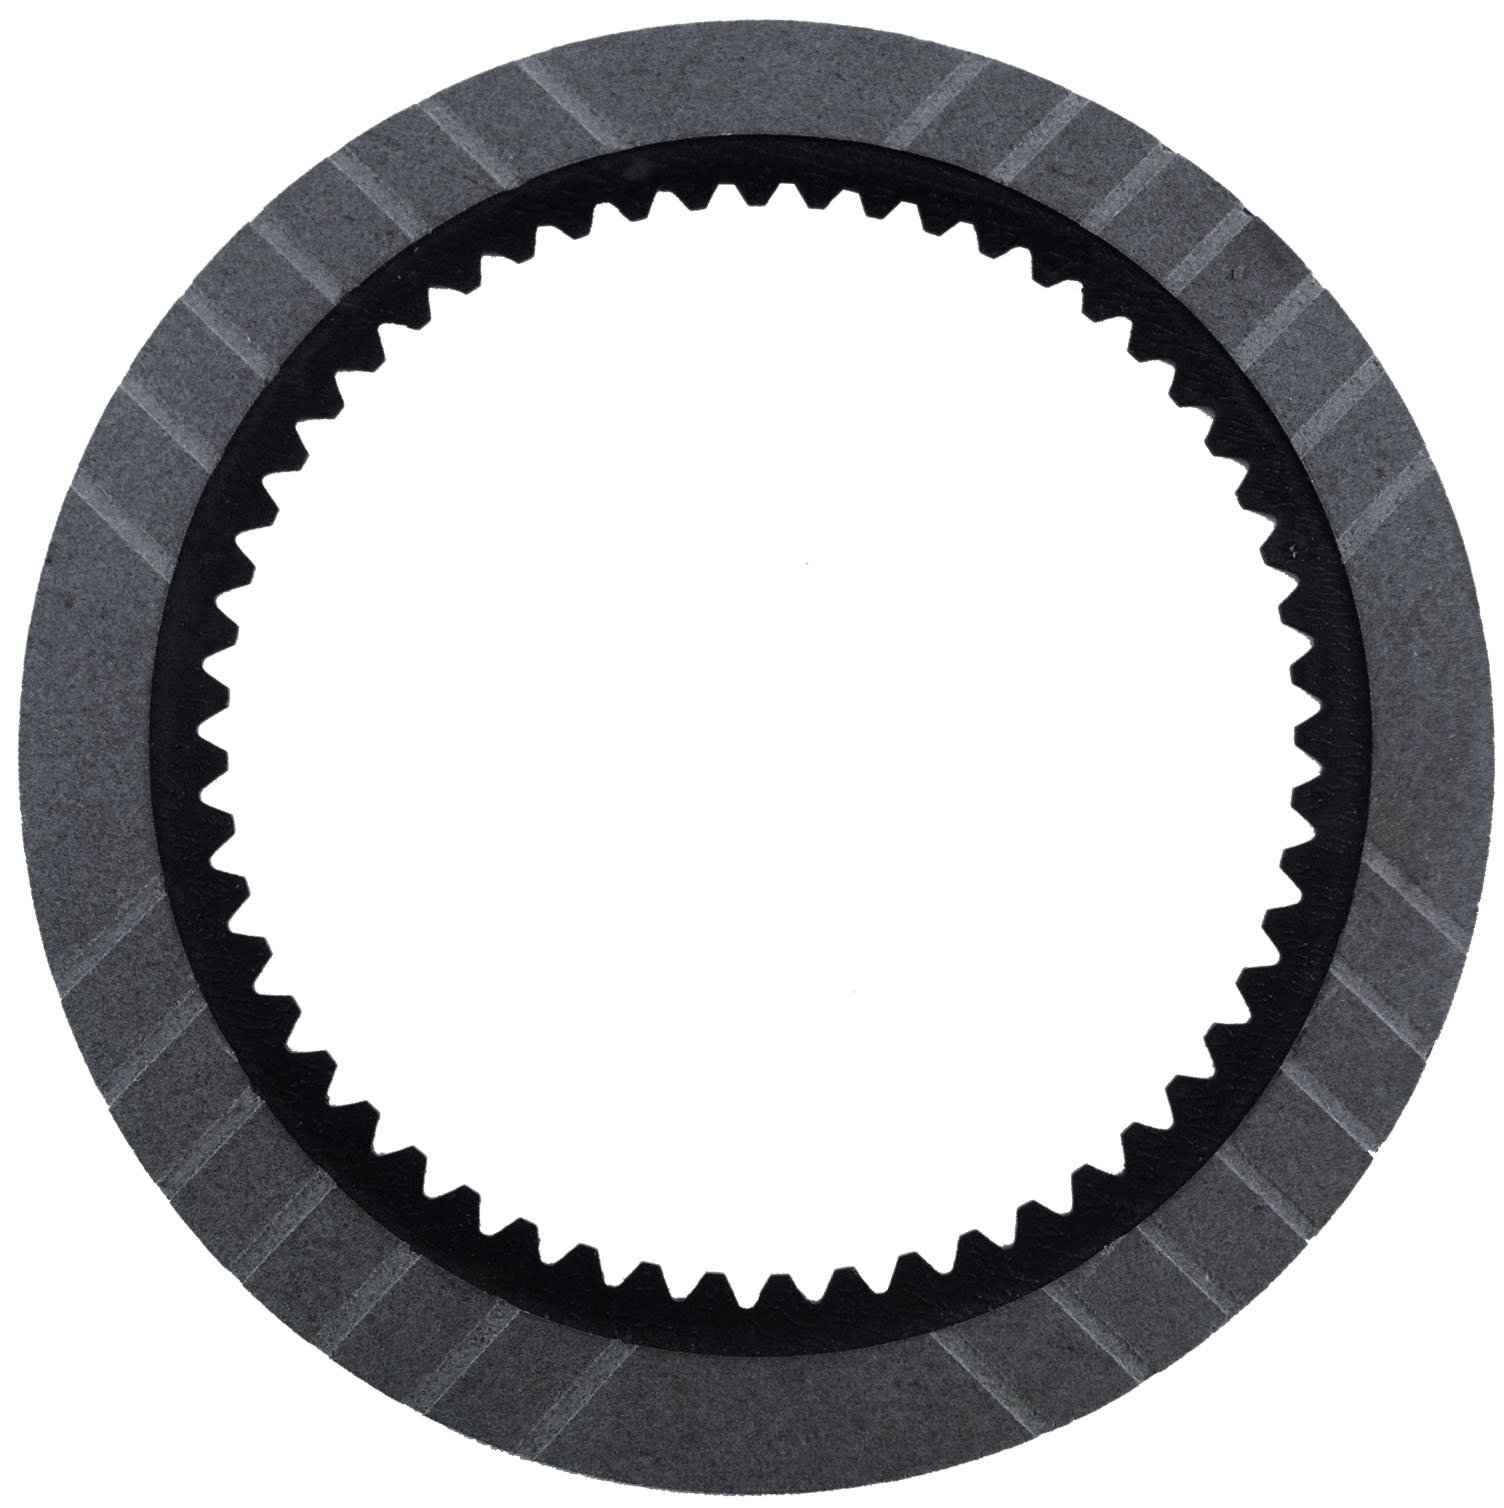 A500 / 44RE, 40RH, 42RH, 44RH, 42RE, A904, A518 / 46RH, 46RE, A618 / 47RH, 47RE, 48RE GPZ Friction Clutch Plate